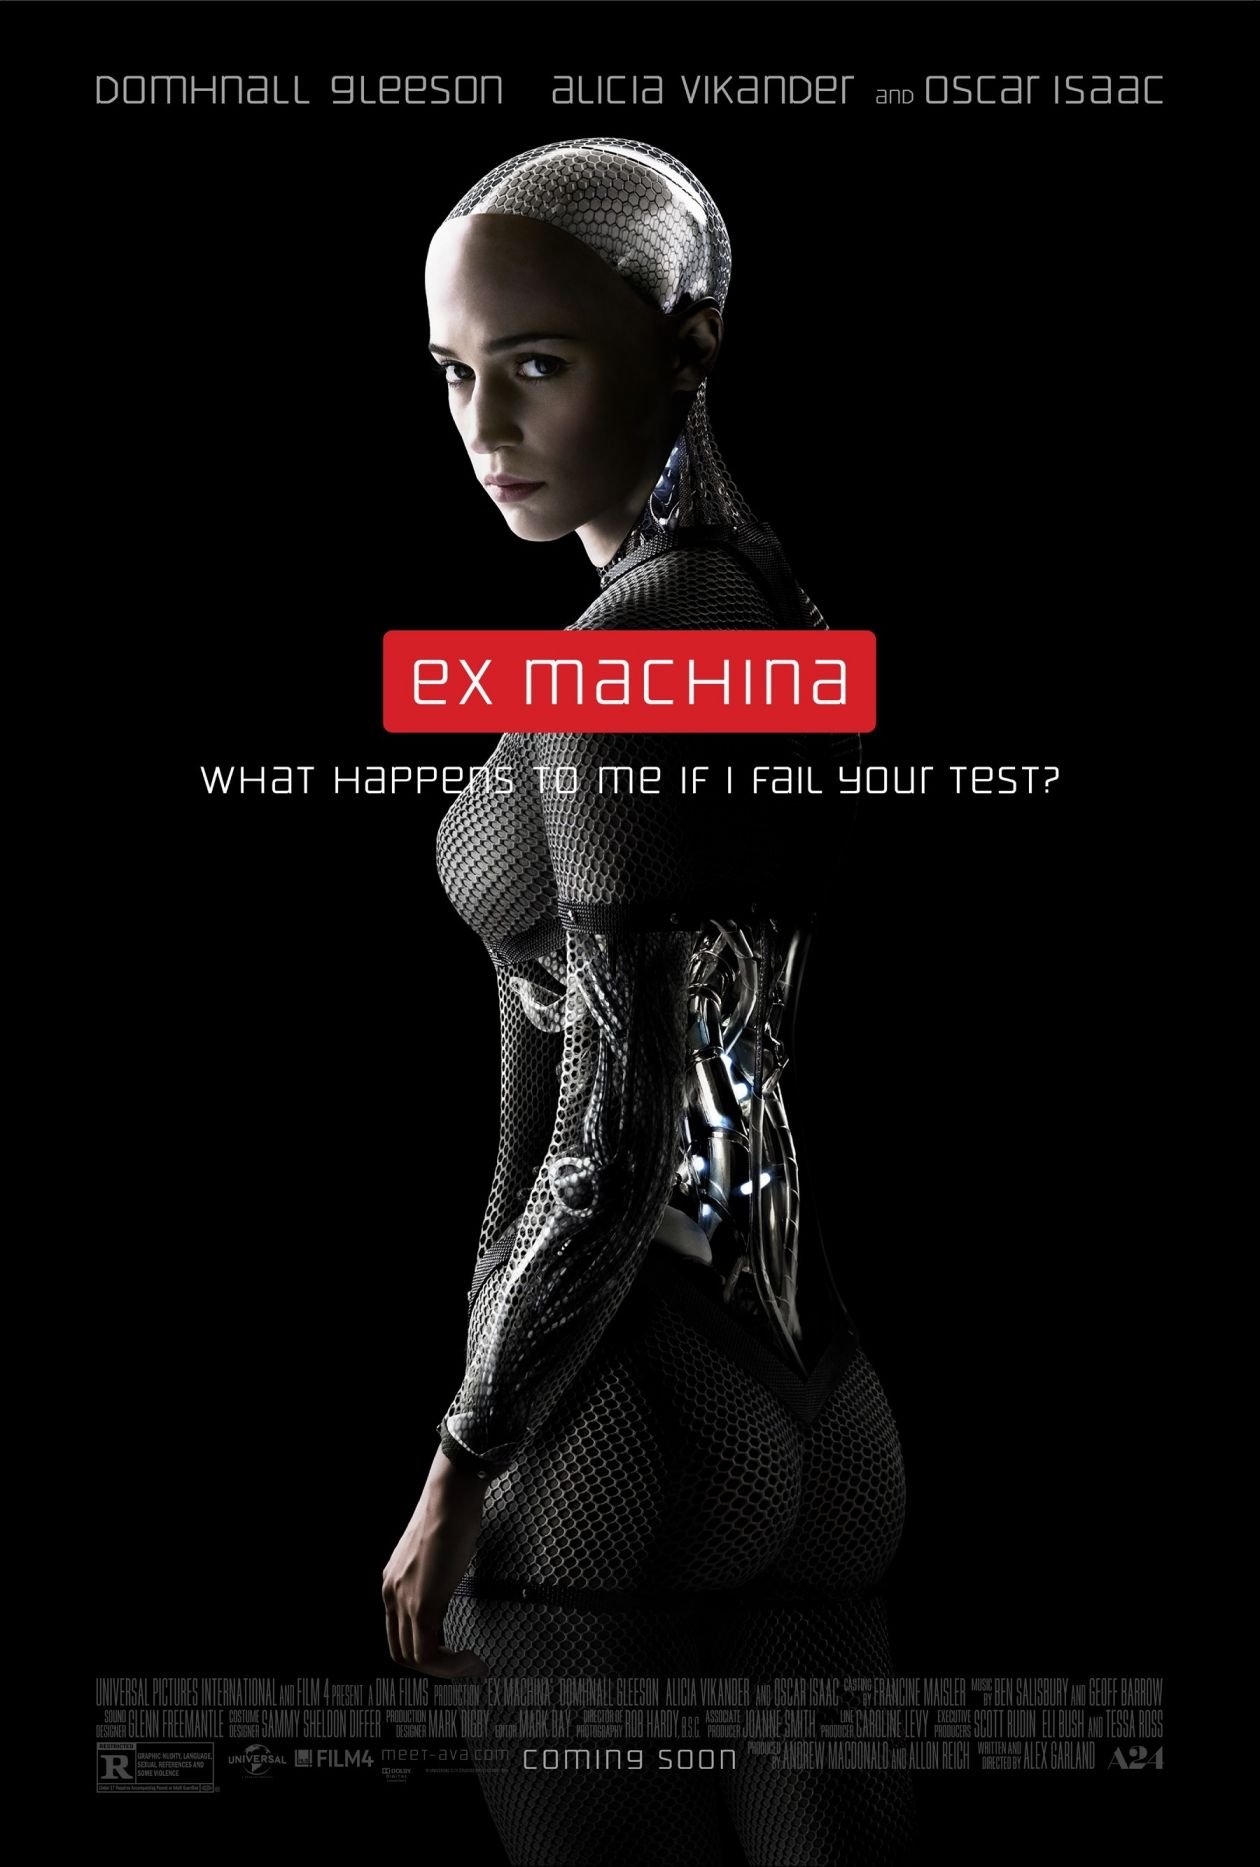 Alicia Vikander | Ex Machina / Alex Garland / Movie Poster / Affiche film